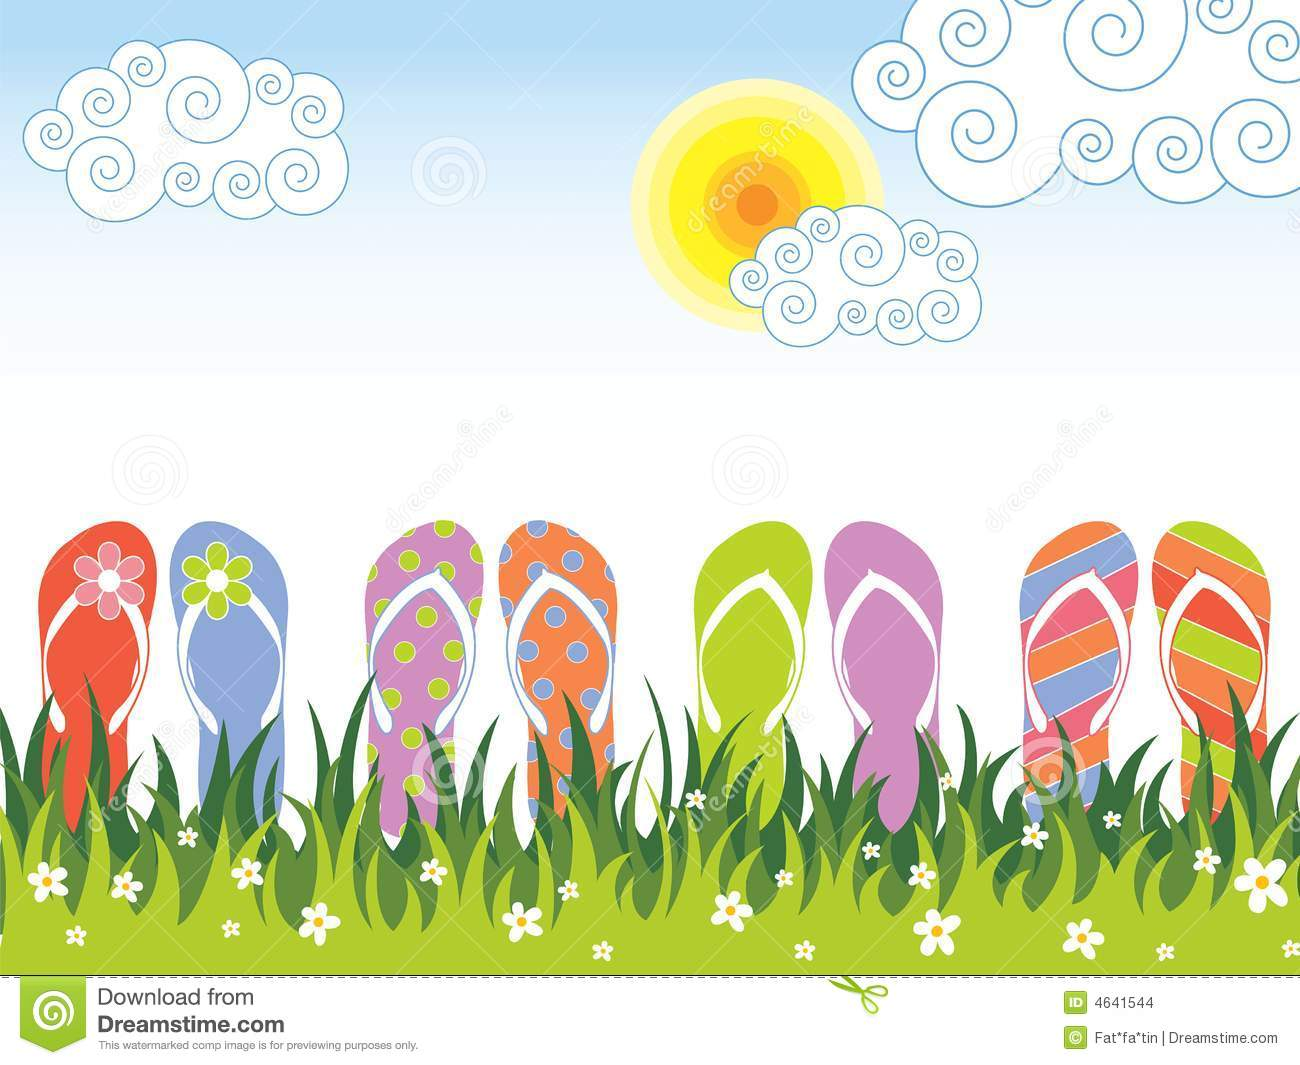 Stock Images Summer Colorful Flip Flops Grass Image4641544 on Green Spiral Clip